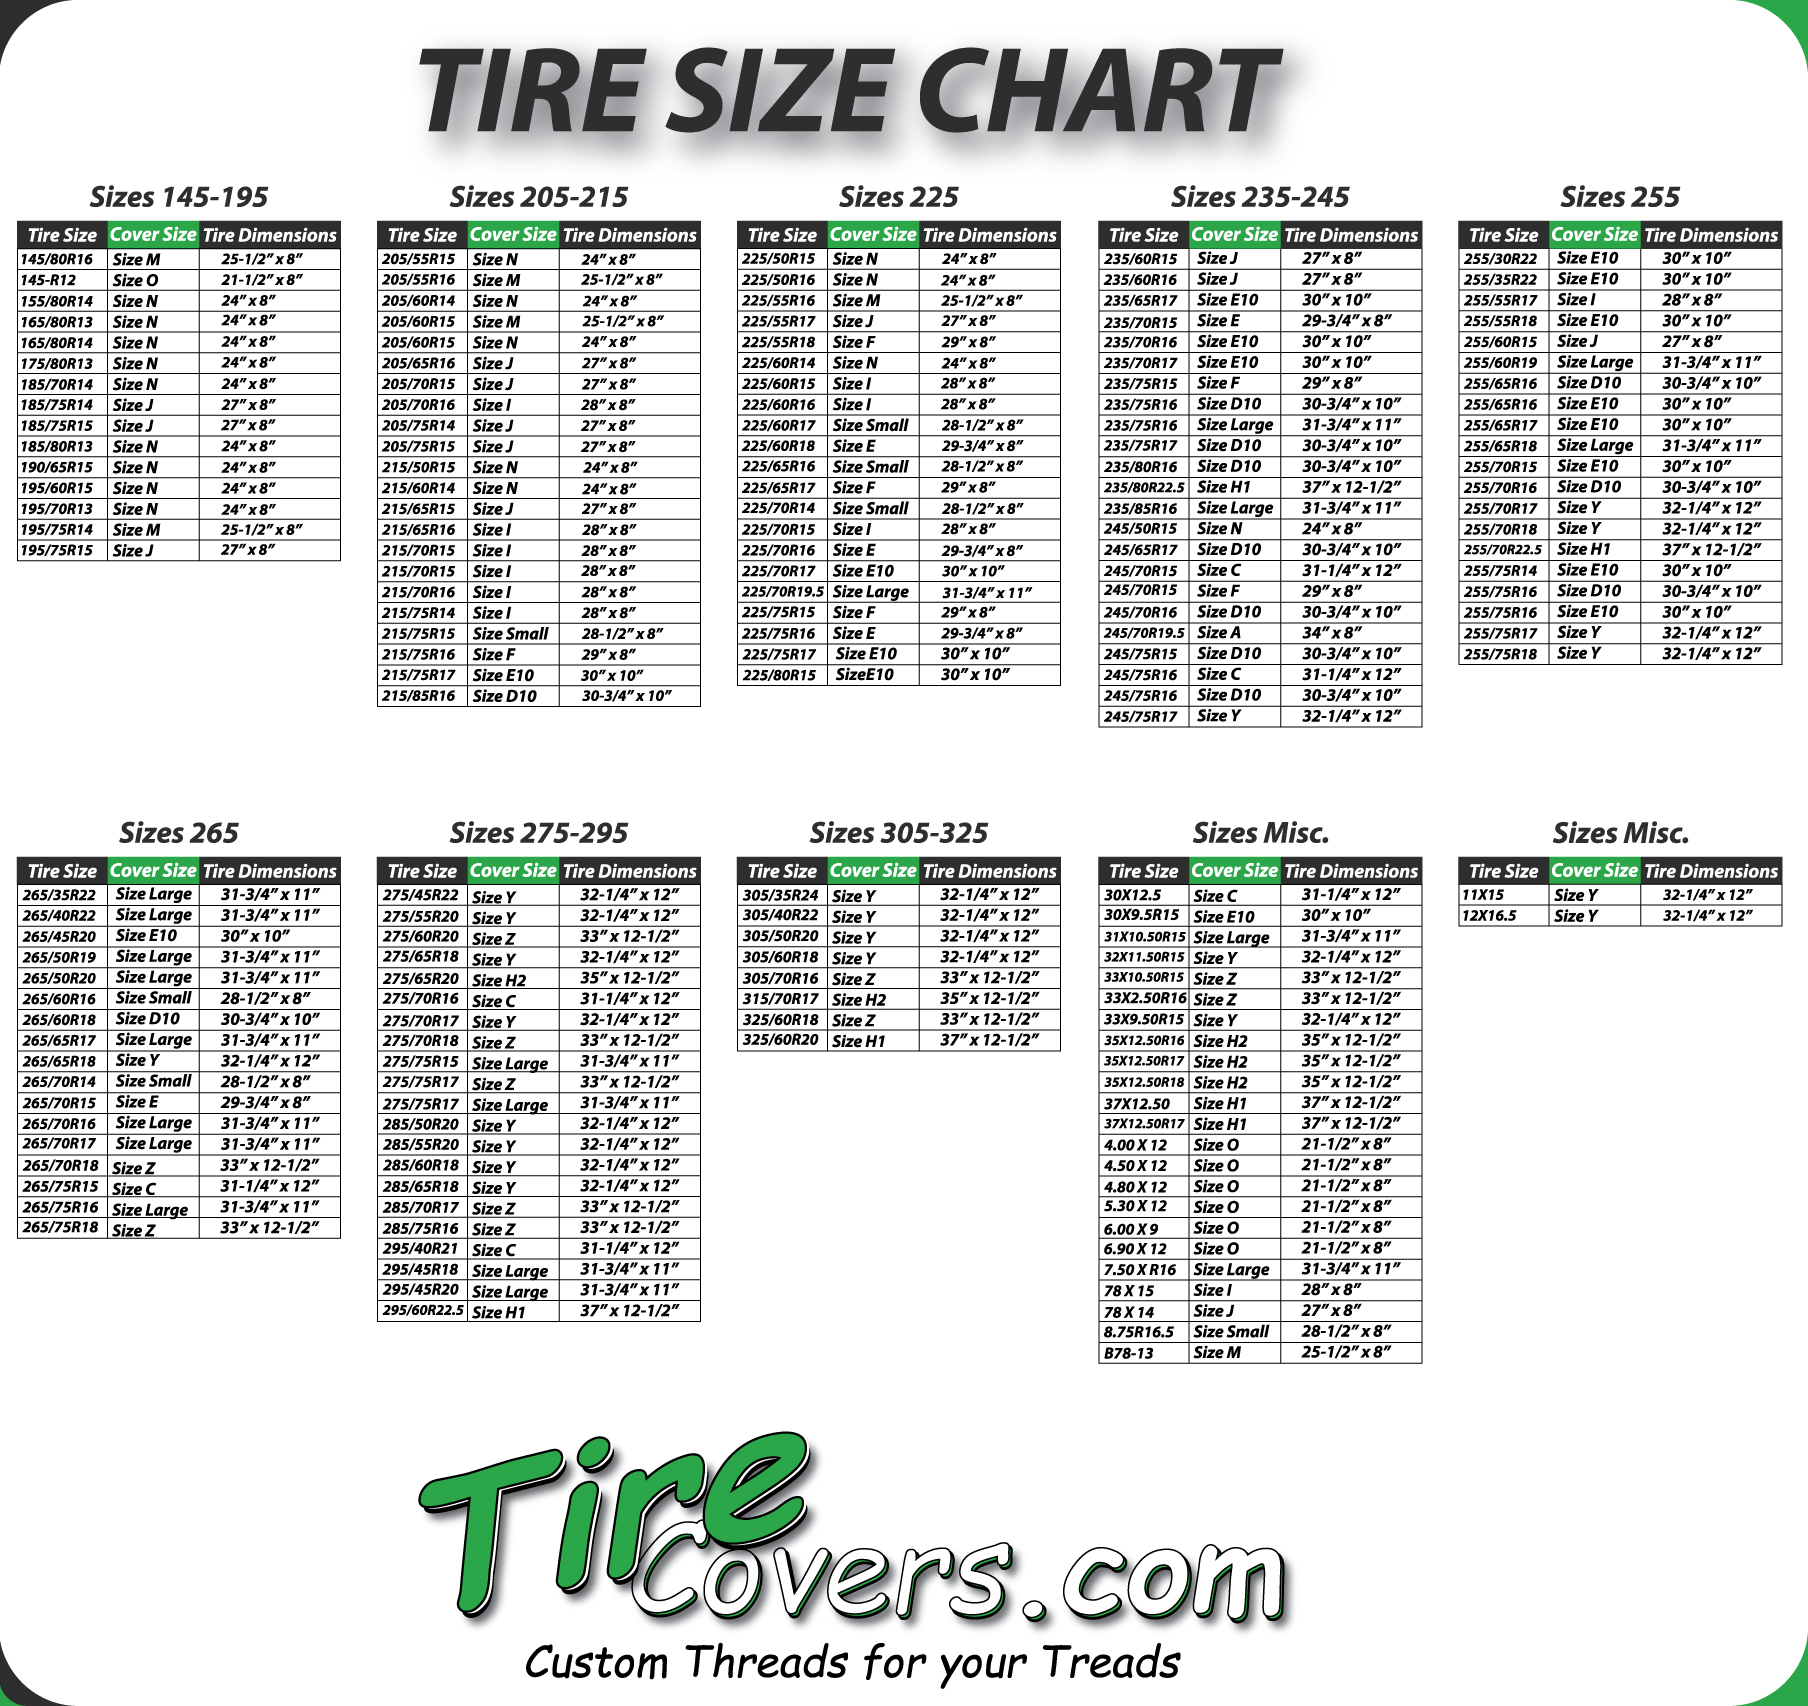 Tire To Wheel Width Chart >> Tire Sizes Chart - Rc tire size chart deliciouscrepesbistro com - ayucar